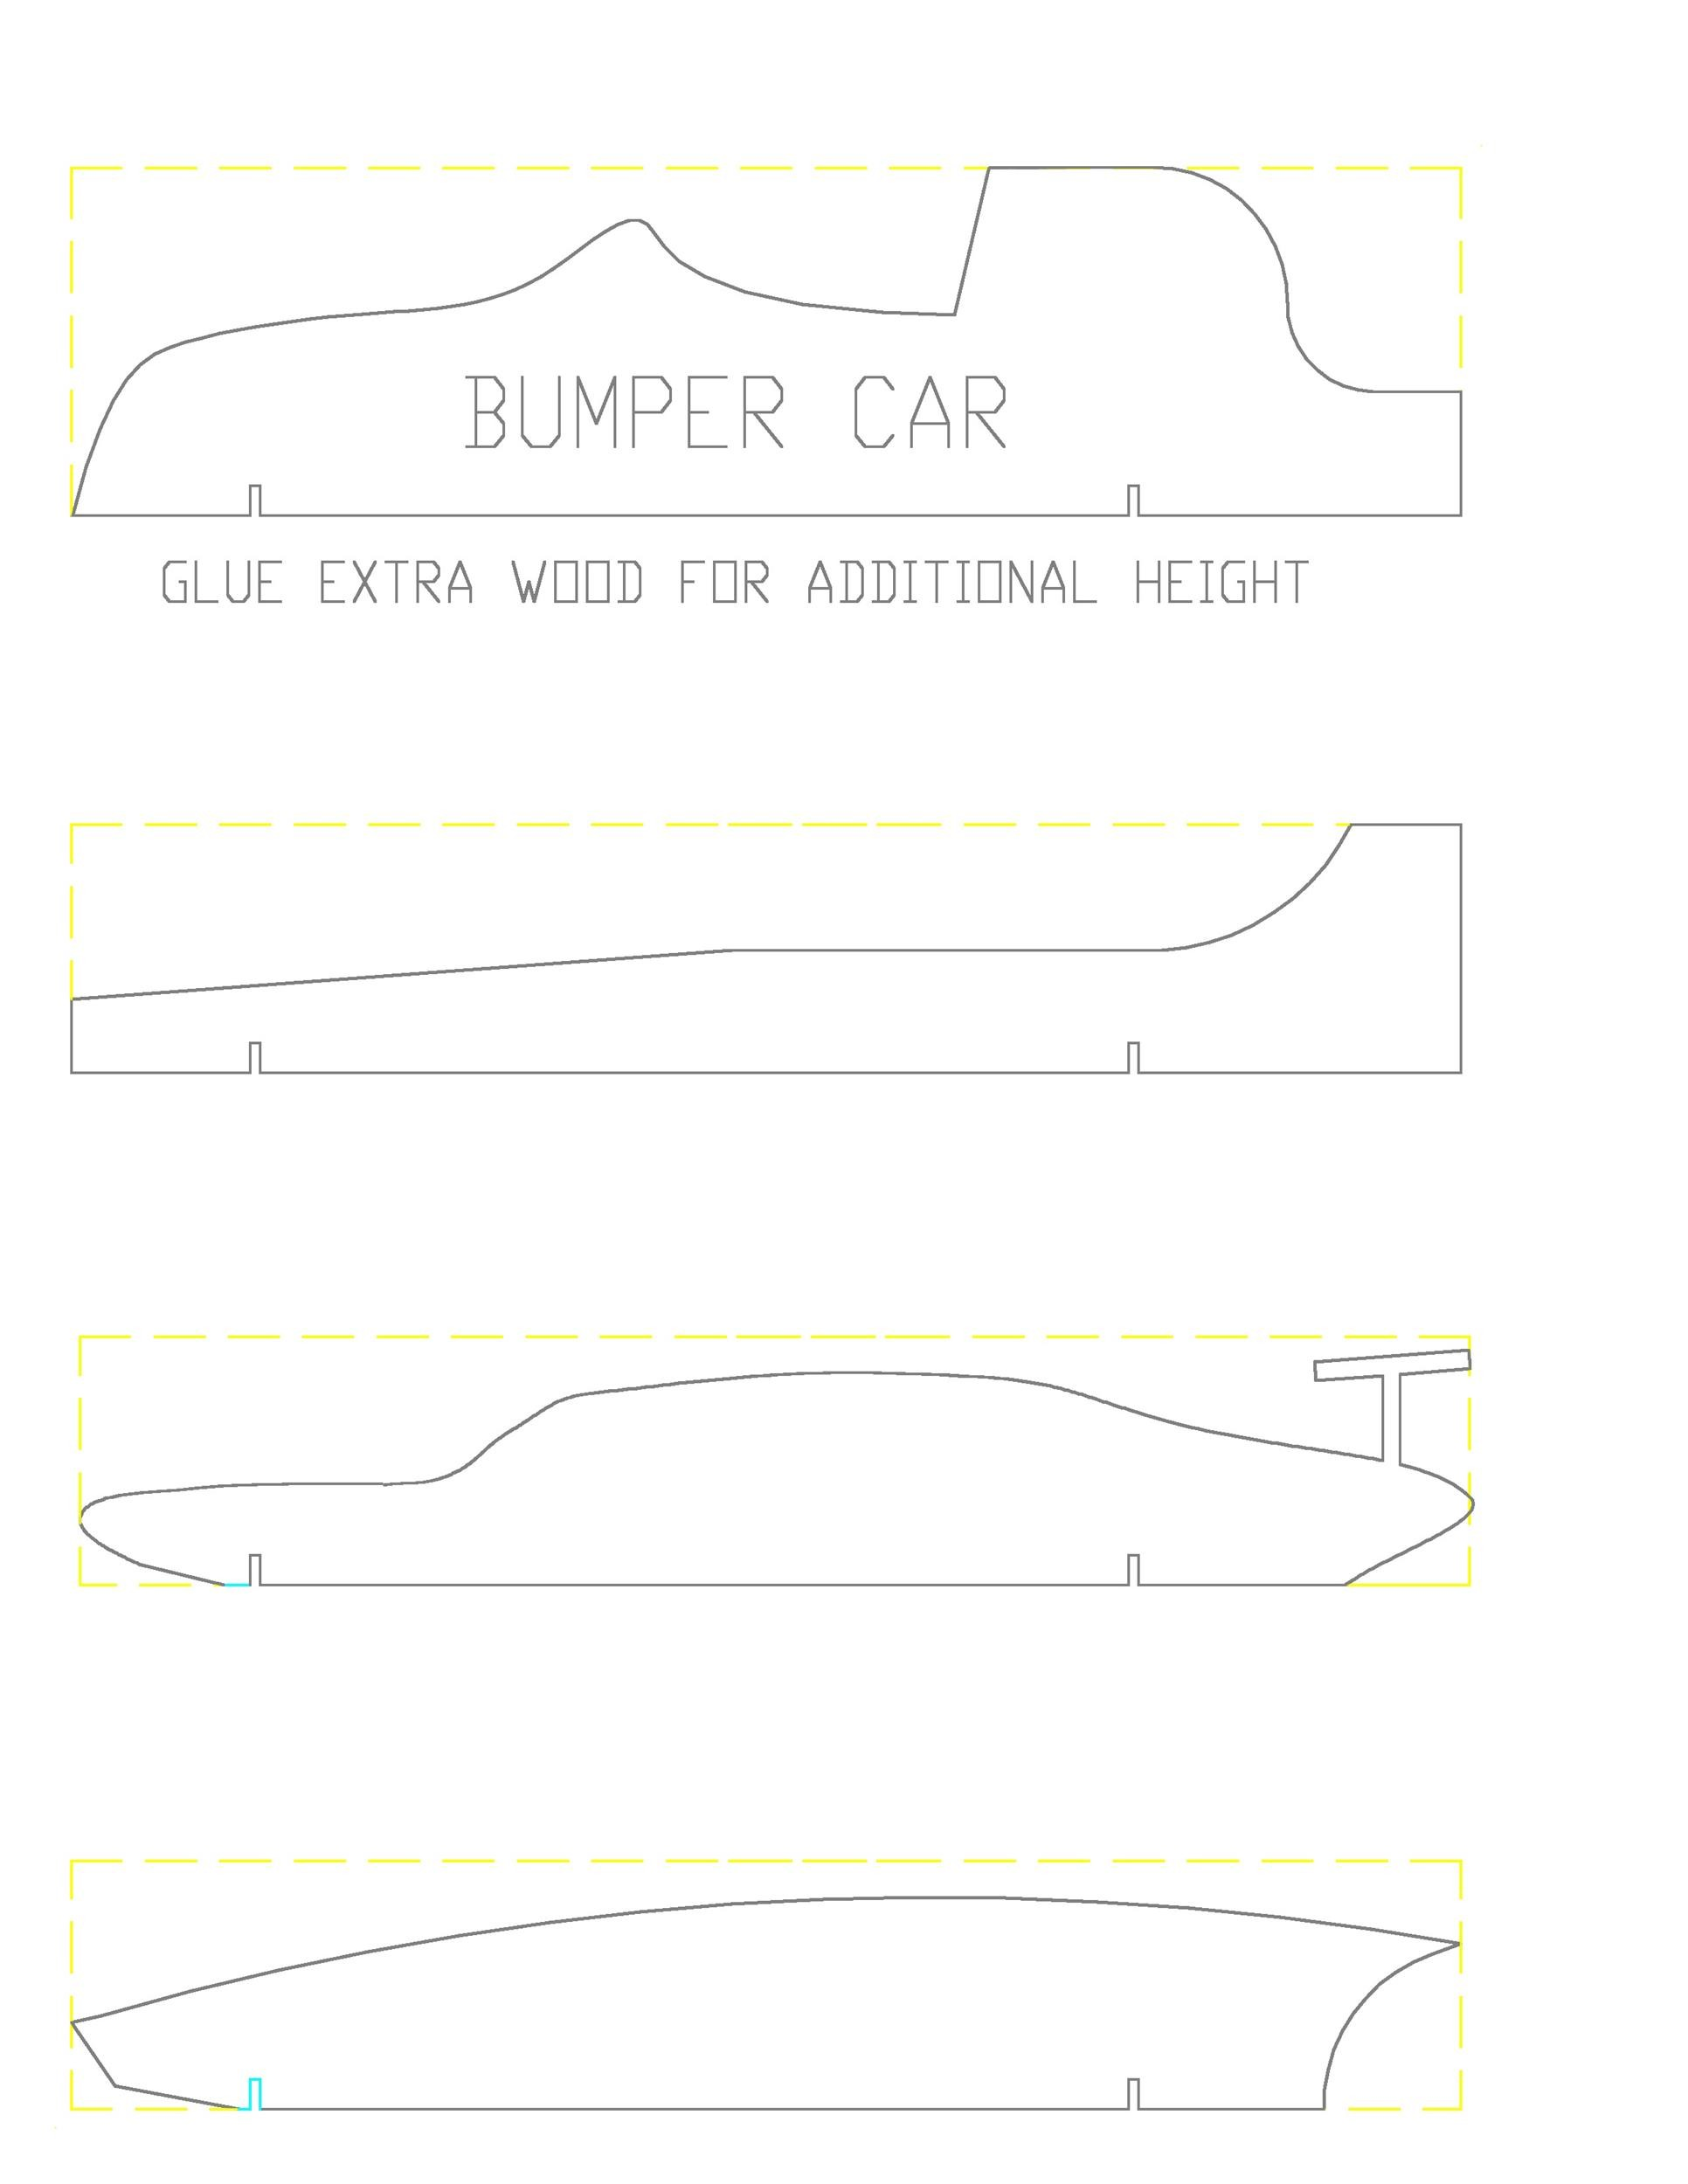 39 awesome pinewood derby car designs templates for Free pinewood derby car templates download